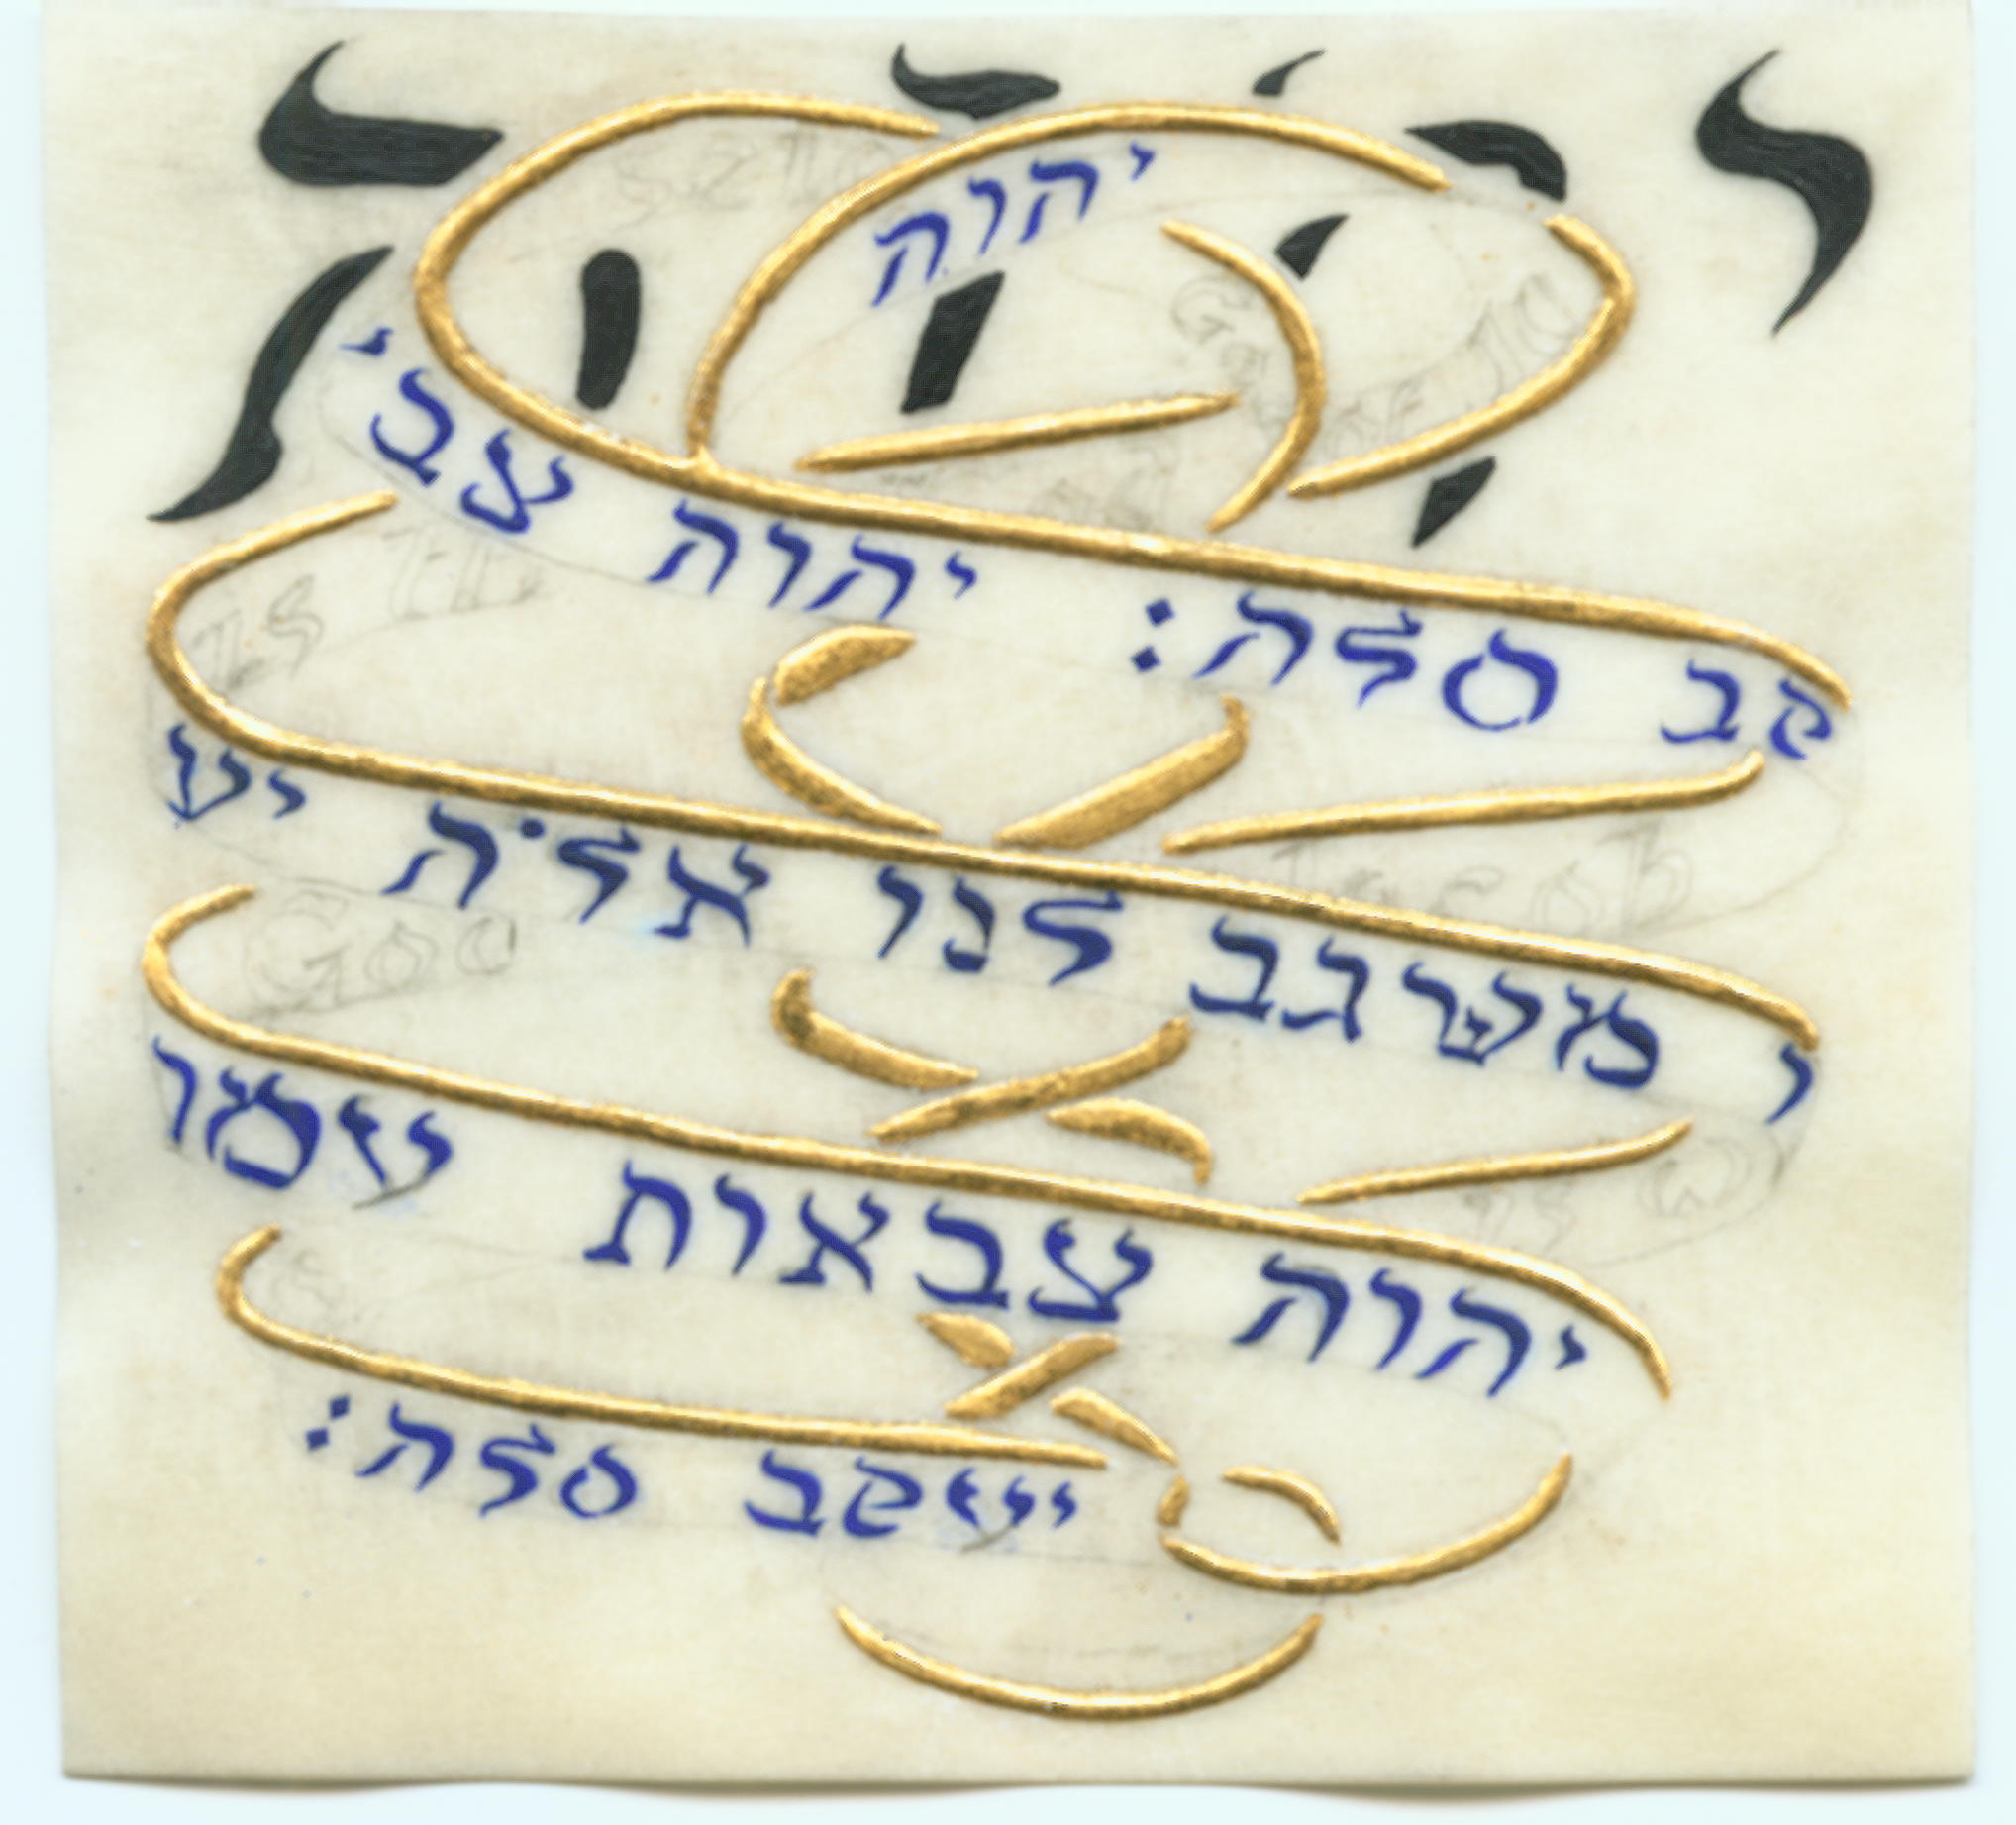 Spektrel Fiyer 3, Hebrew text